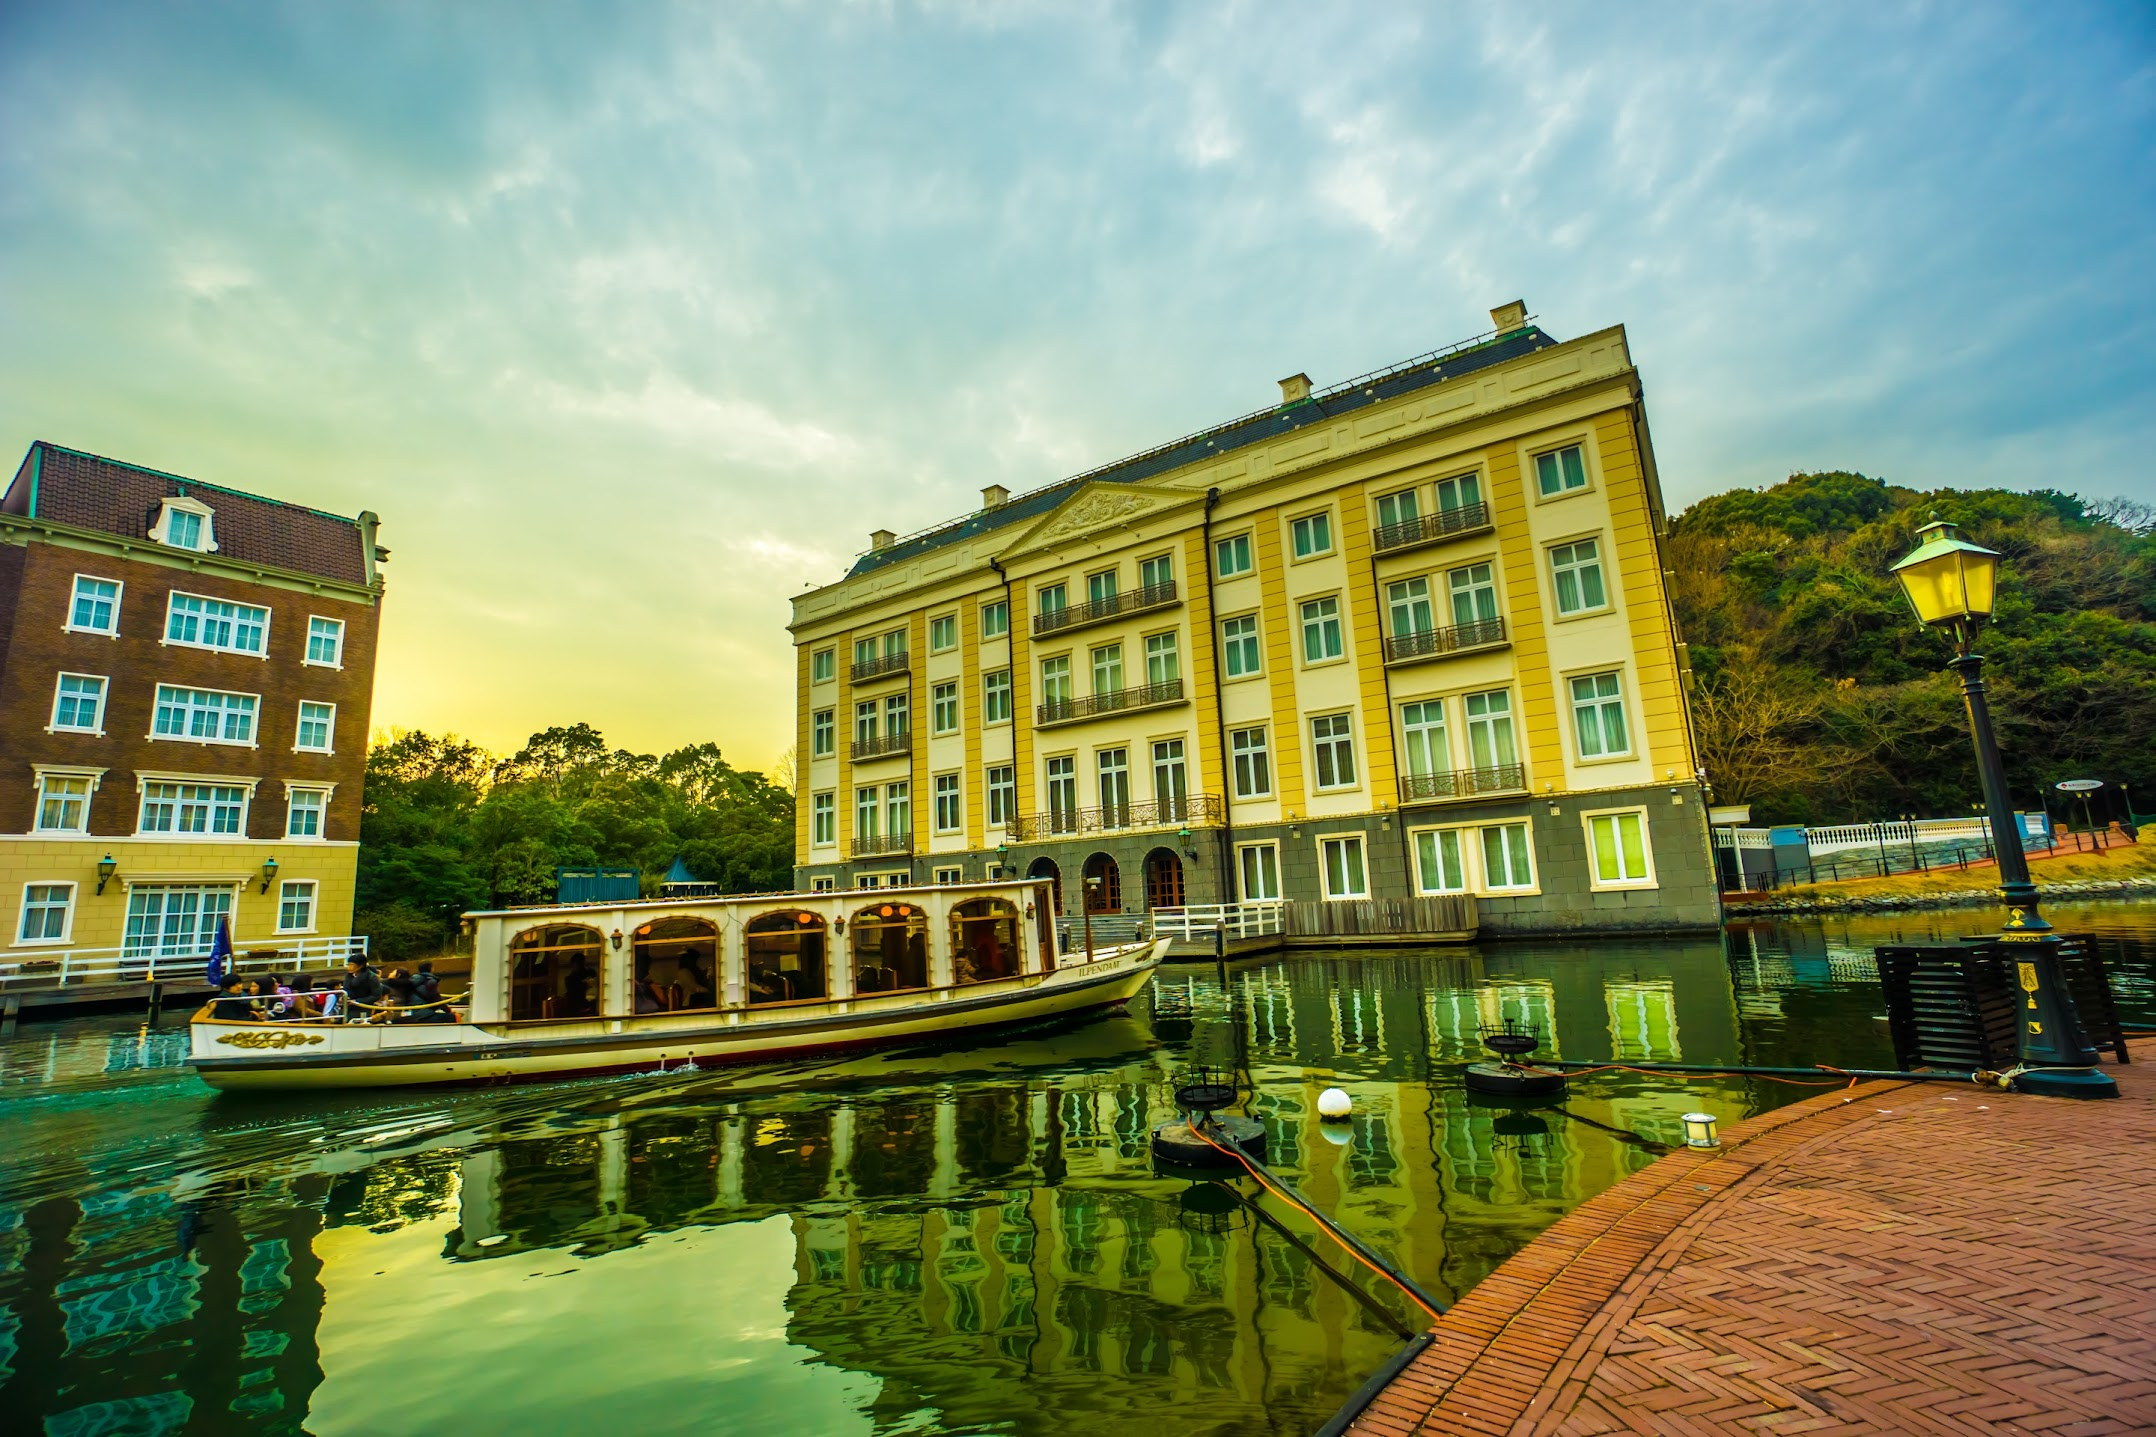 Huis Ten Bosch Canal Cruiser sundown2